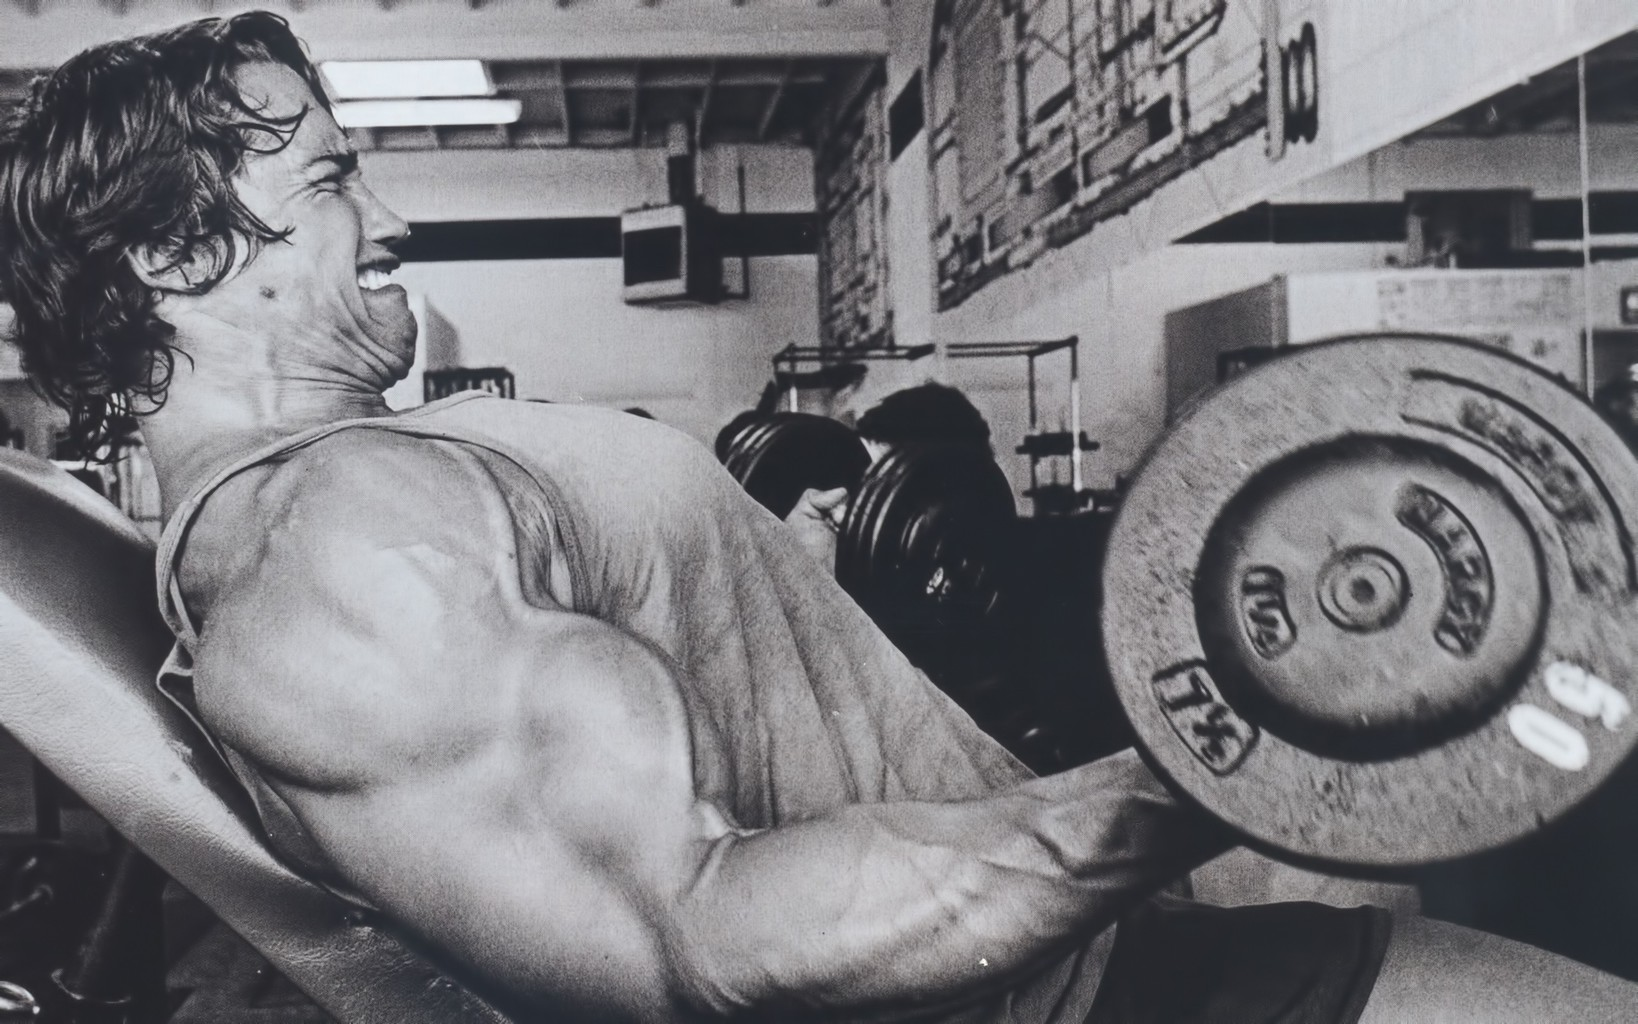 Arnold working out